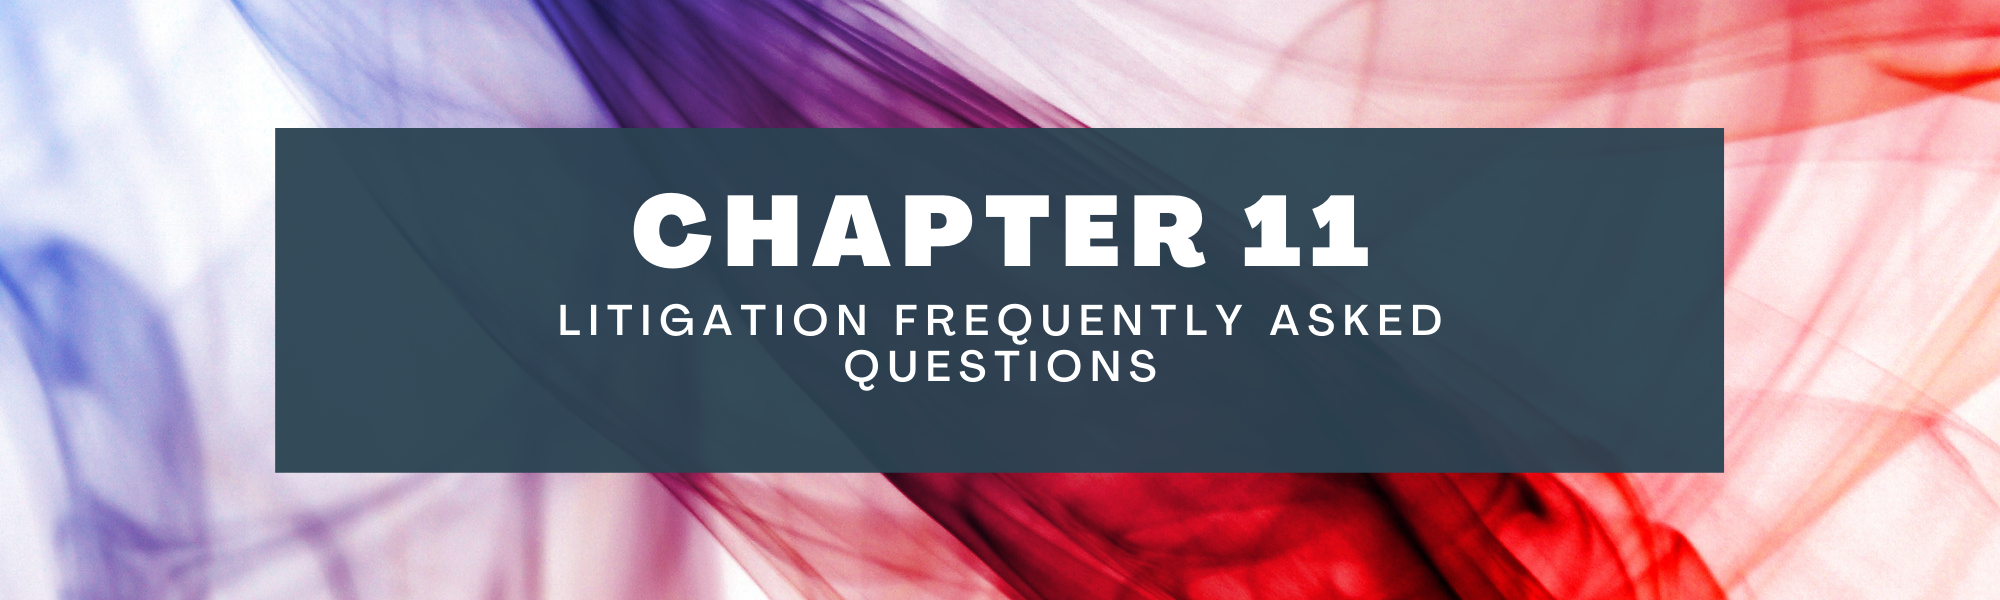 Litigation frequently asked questions